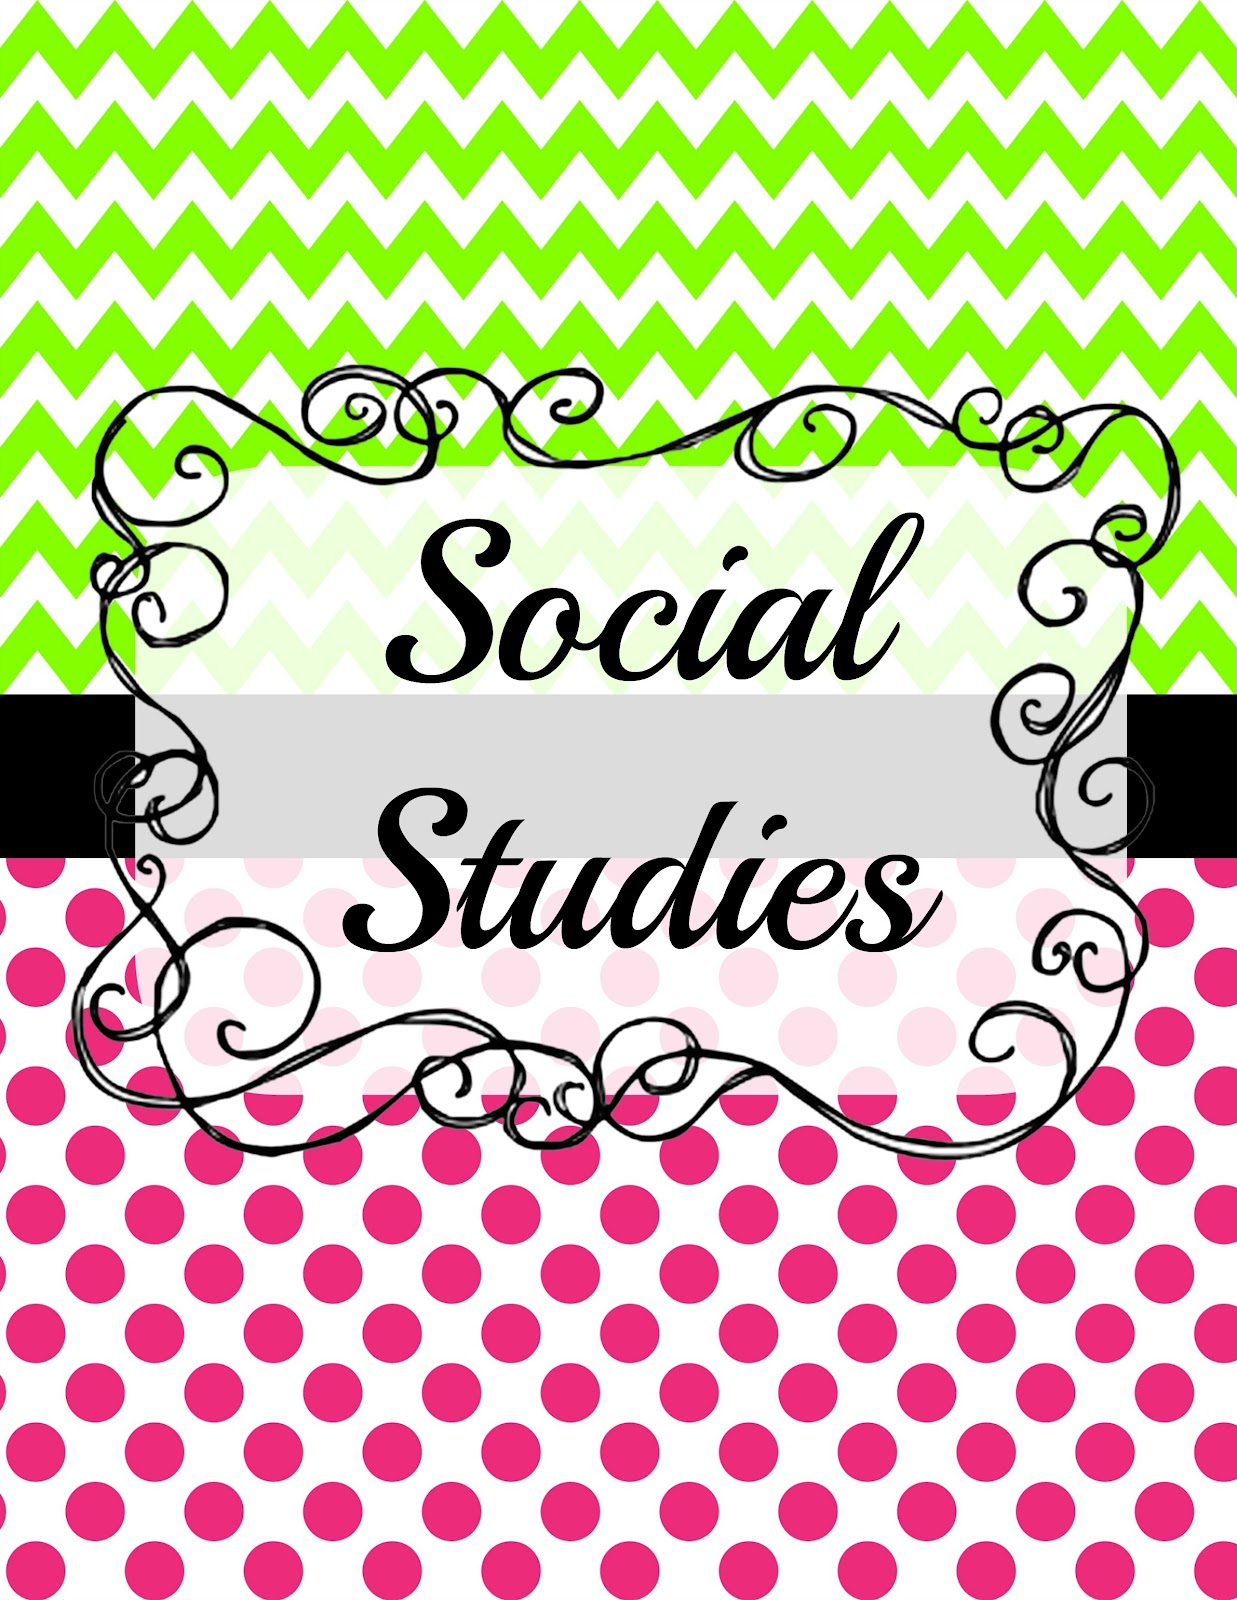 It is a graphic of Ridiculous Social Studies Printable